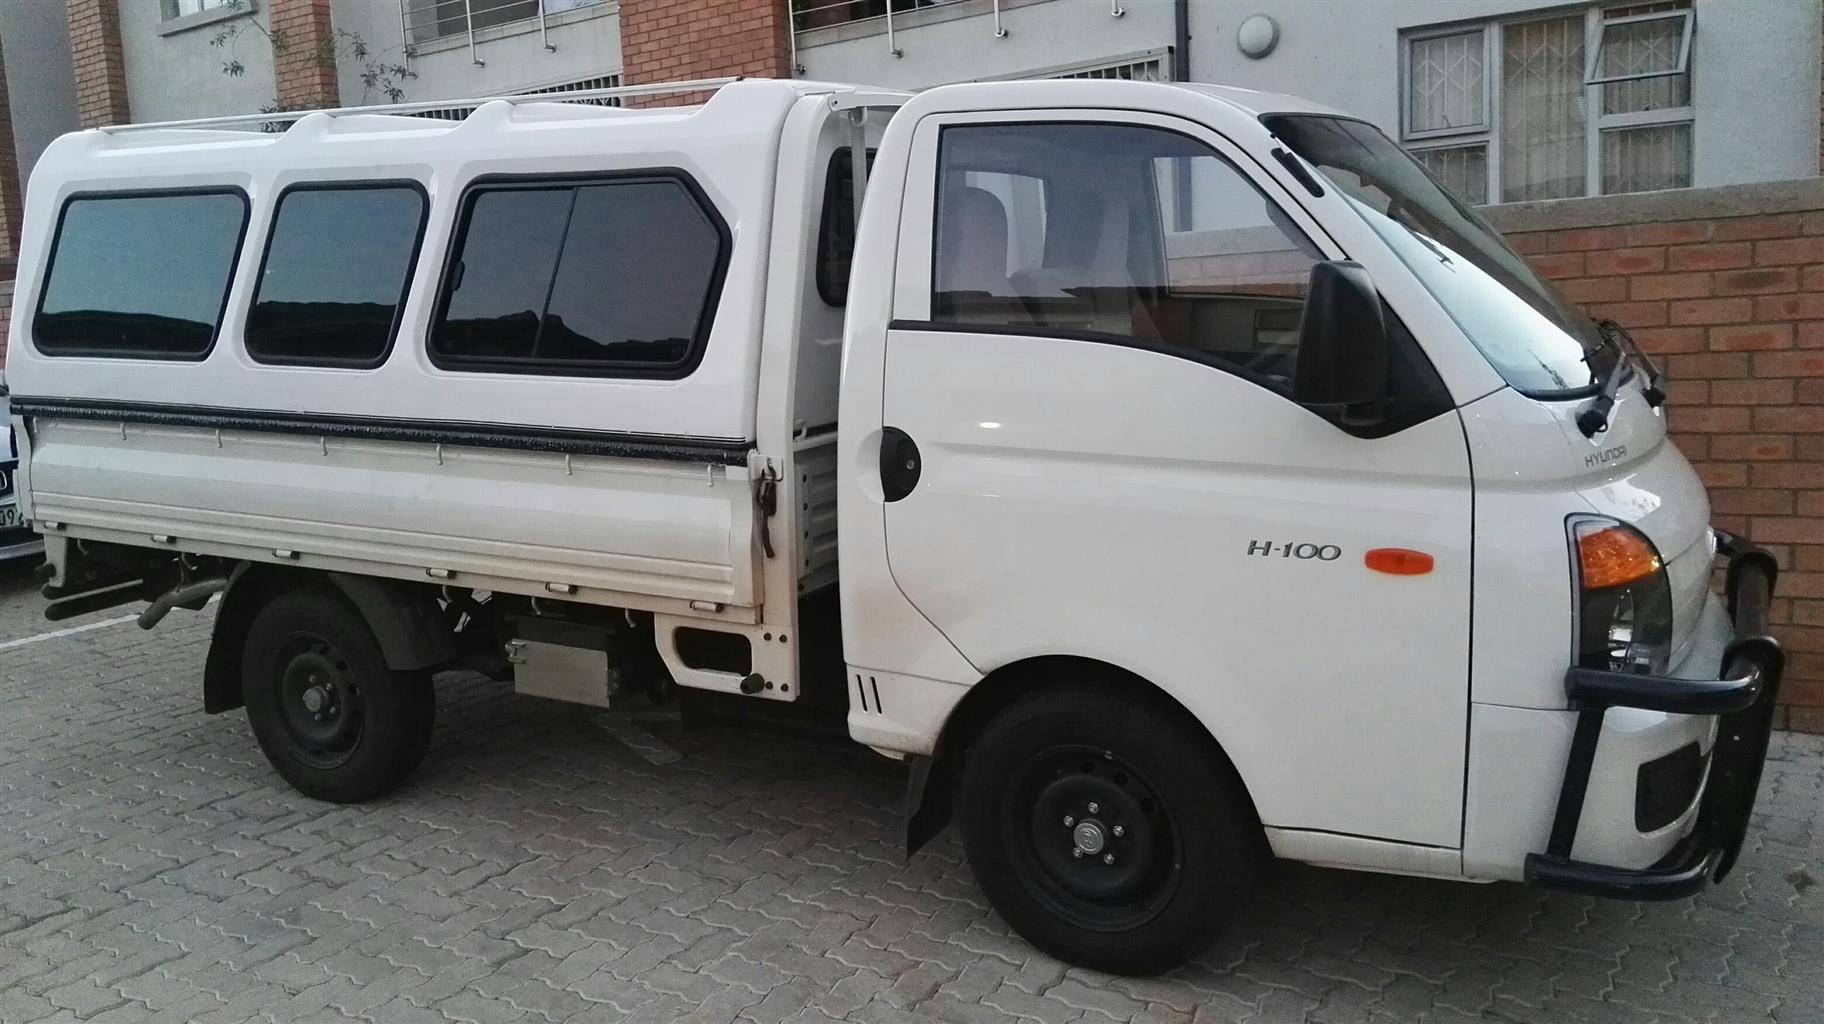 FURNITURE REMOVALS, BAKKIE HIRE TRANSPORT IN AND AROUND MIDRAND: 0729358143; 0737939169; 0638604651